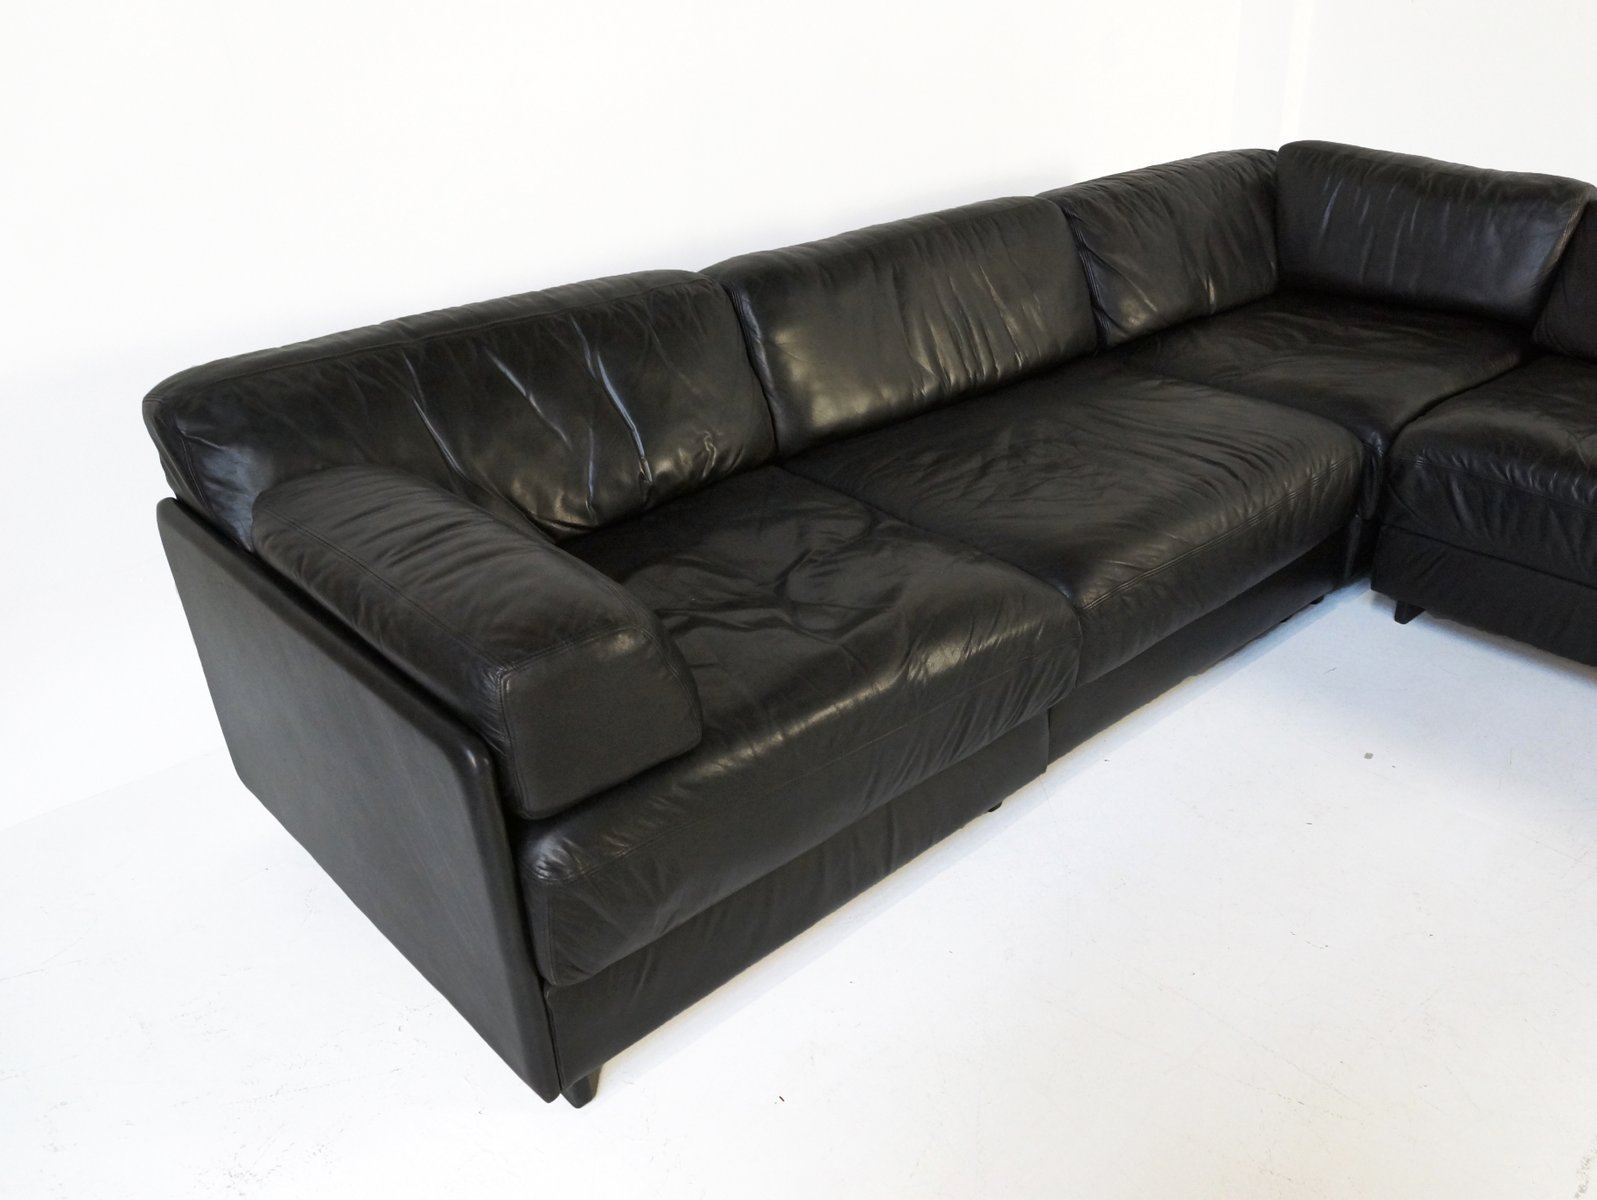 ds 76 black leather element sofa by de sede for sale at pamono. Black Bedroom Furniture Sets. Home Design Ideas